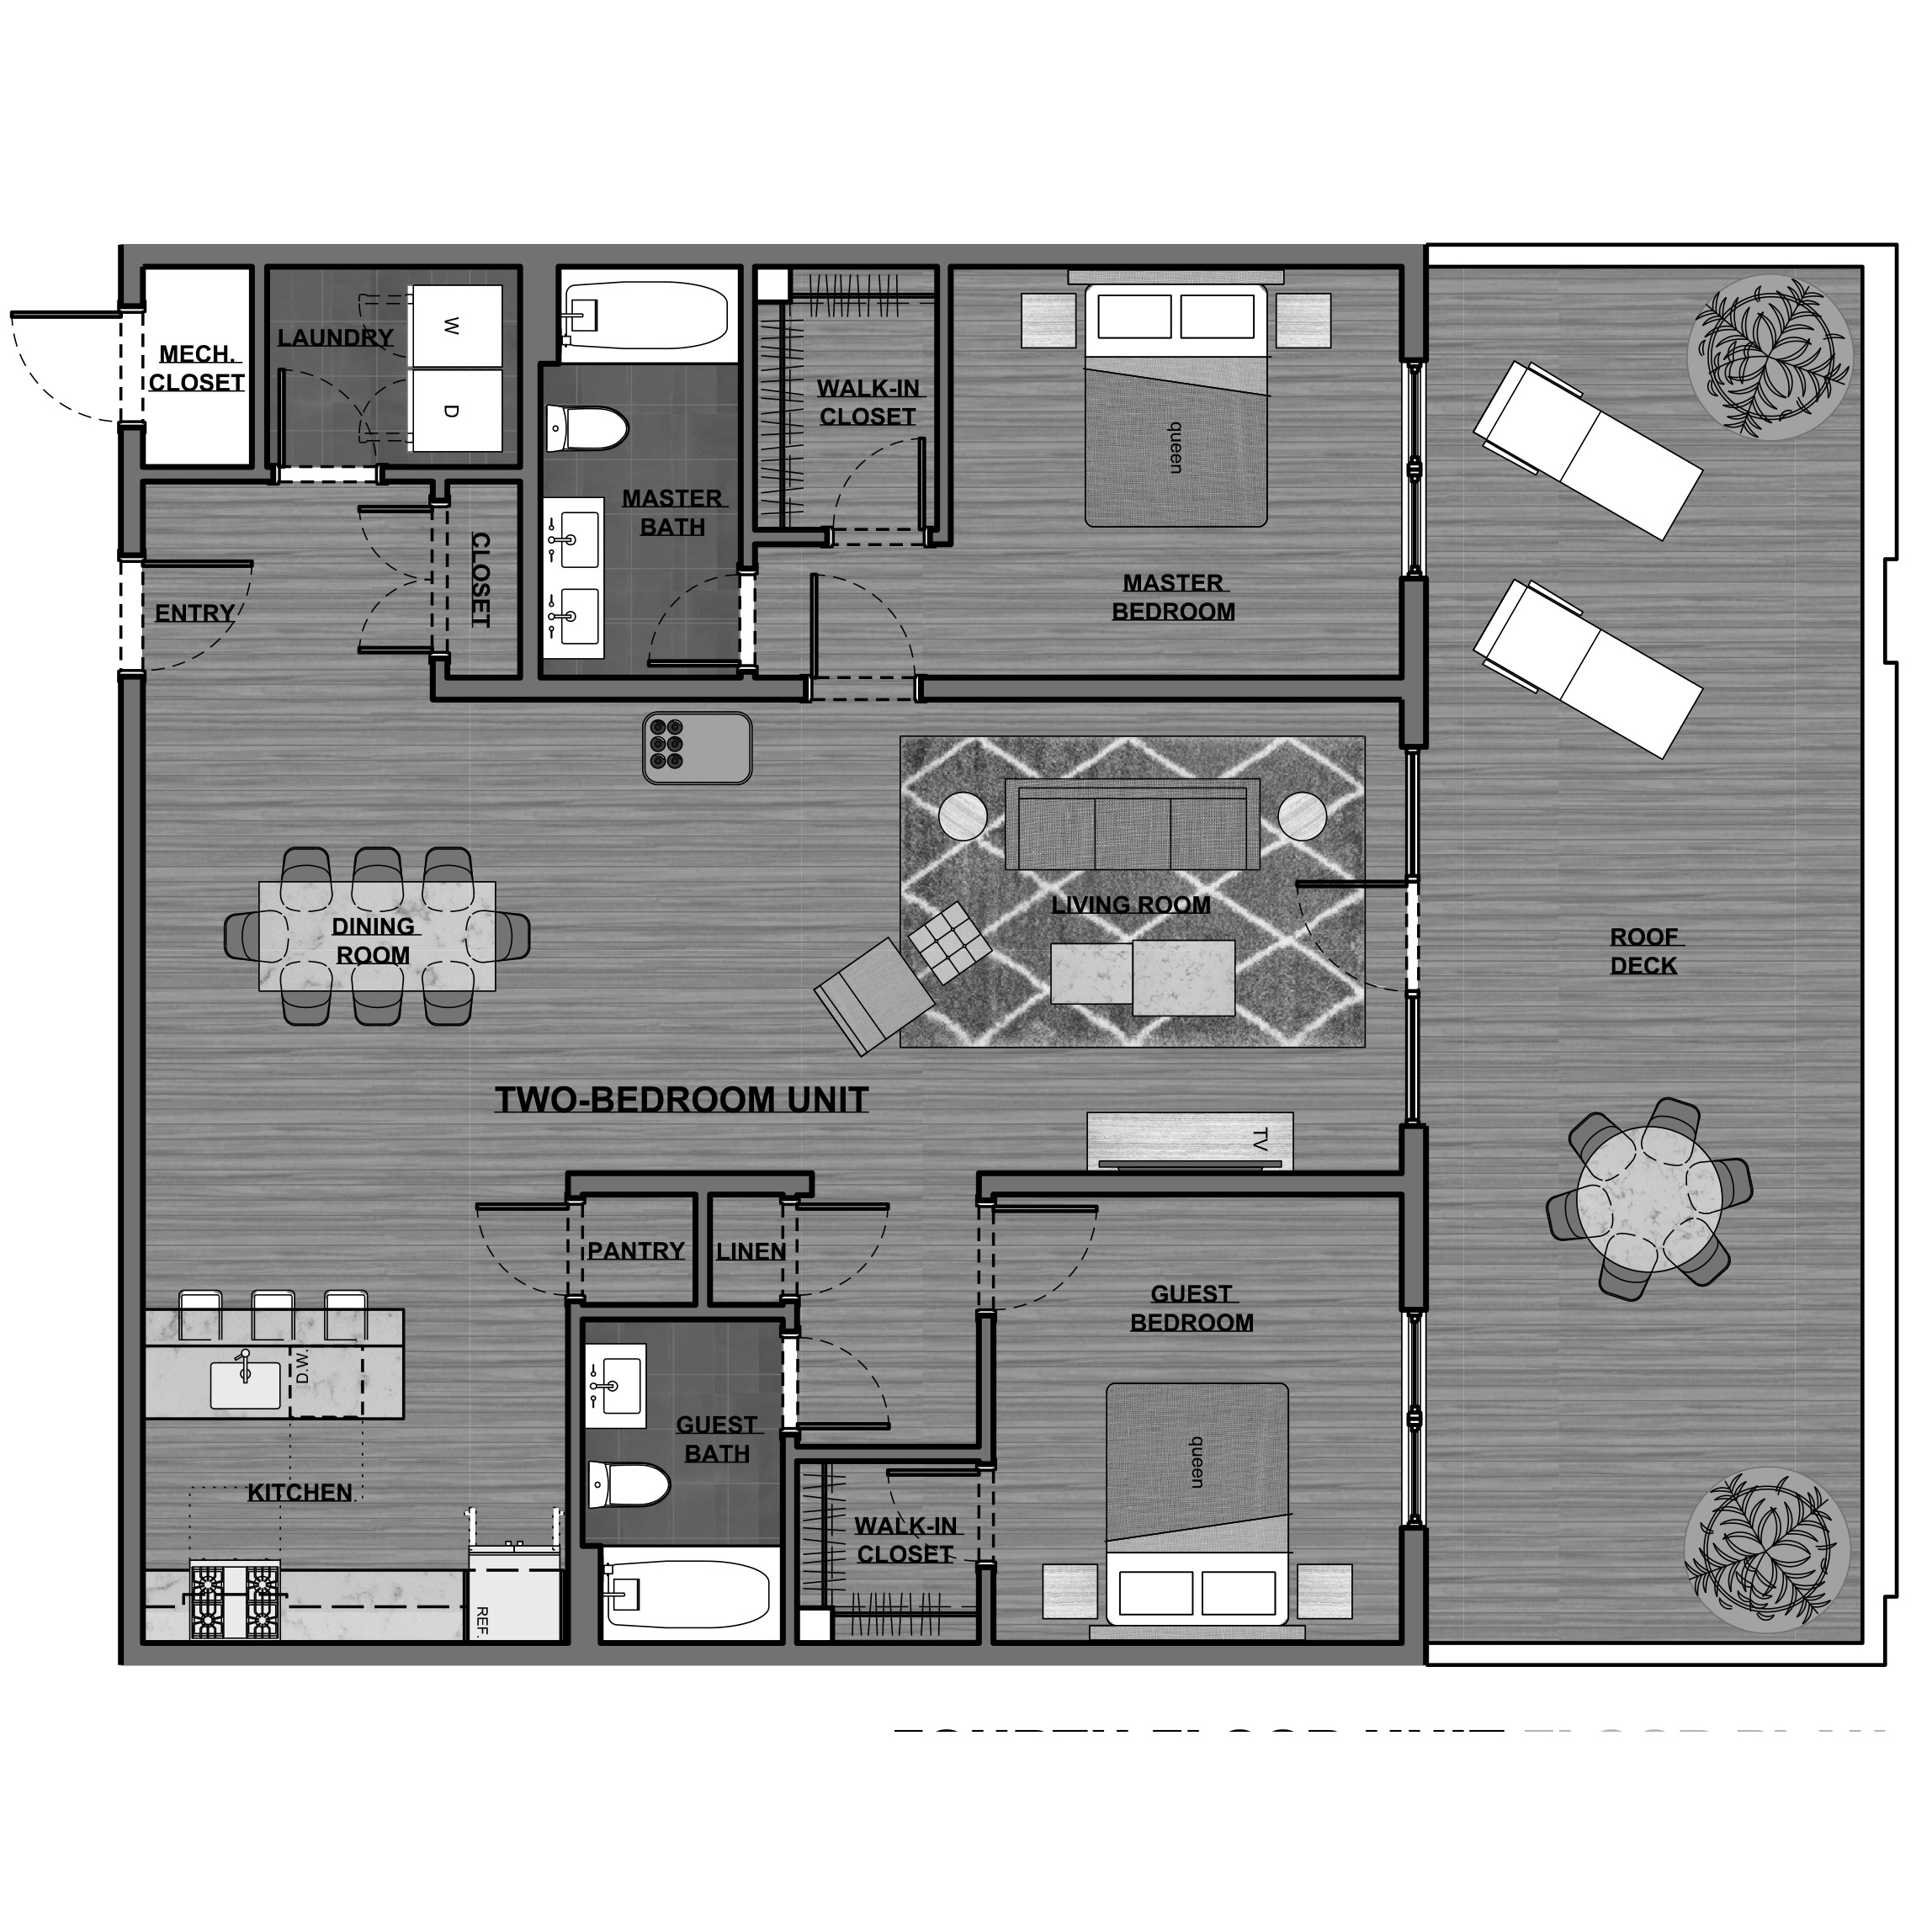 KRAMS 2 bedroom floor plan